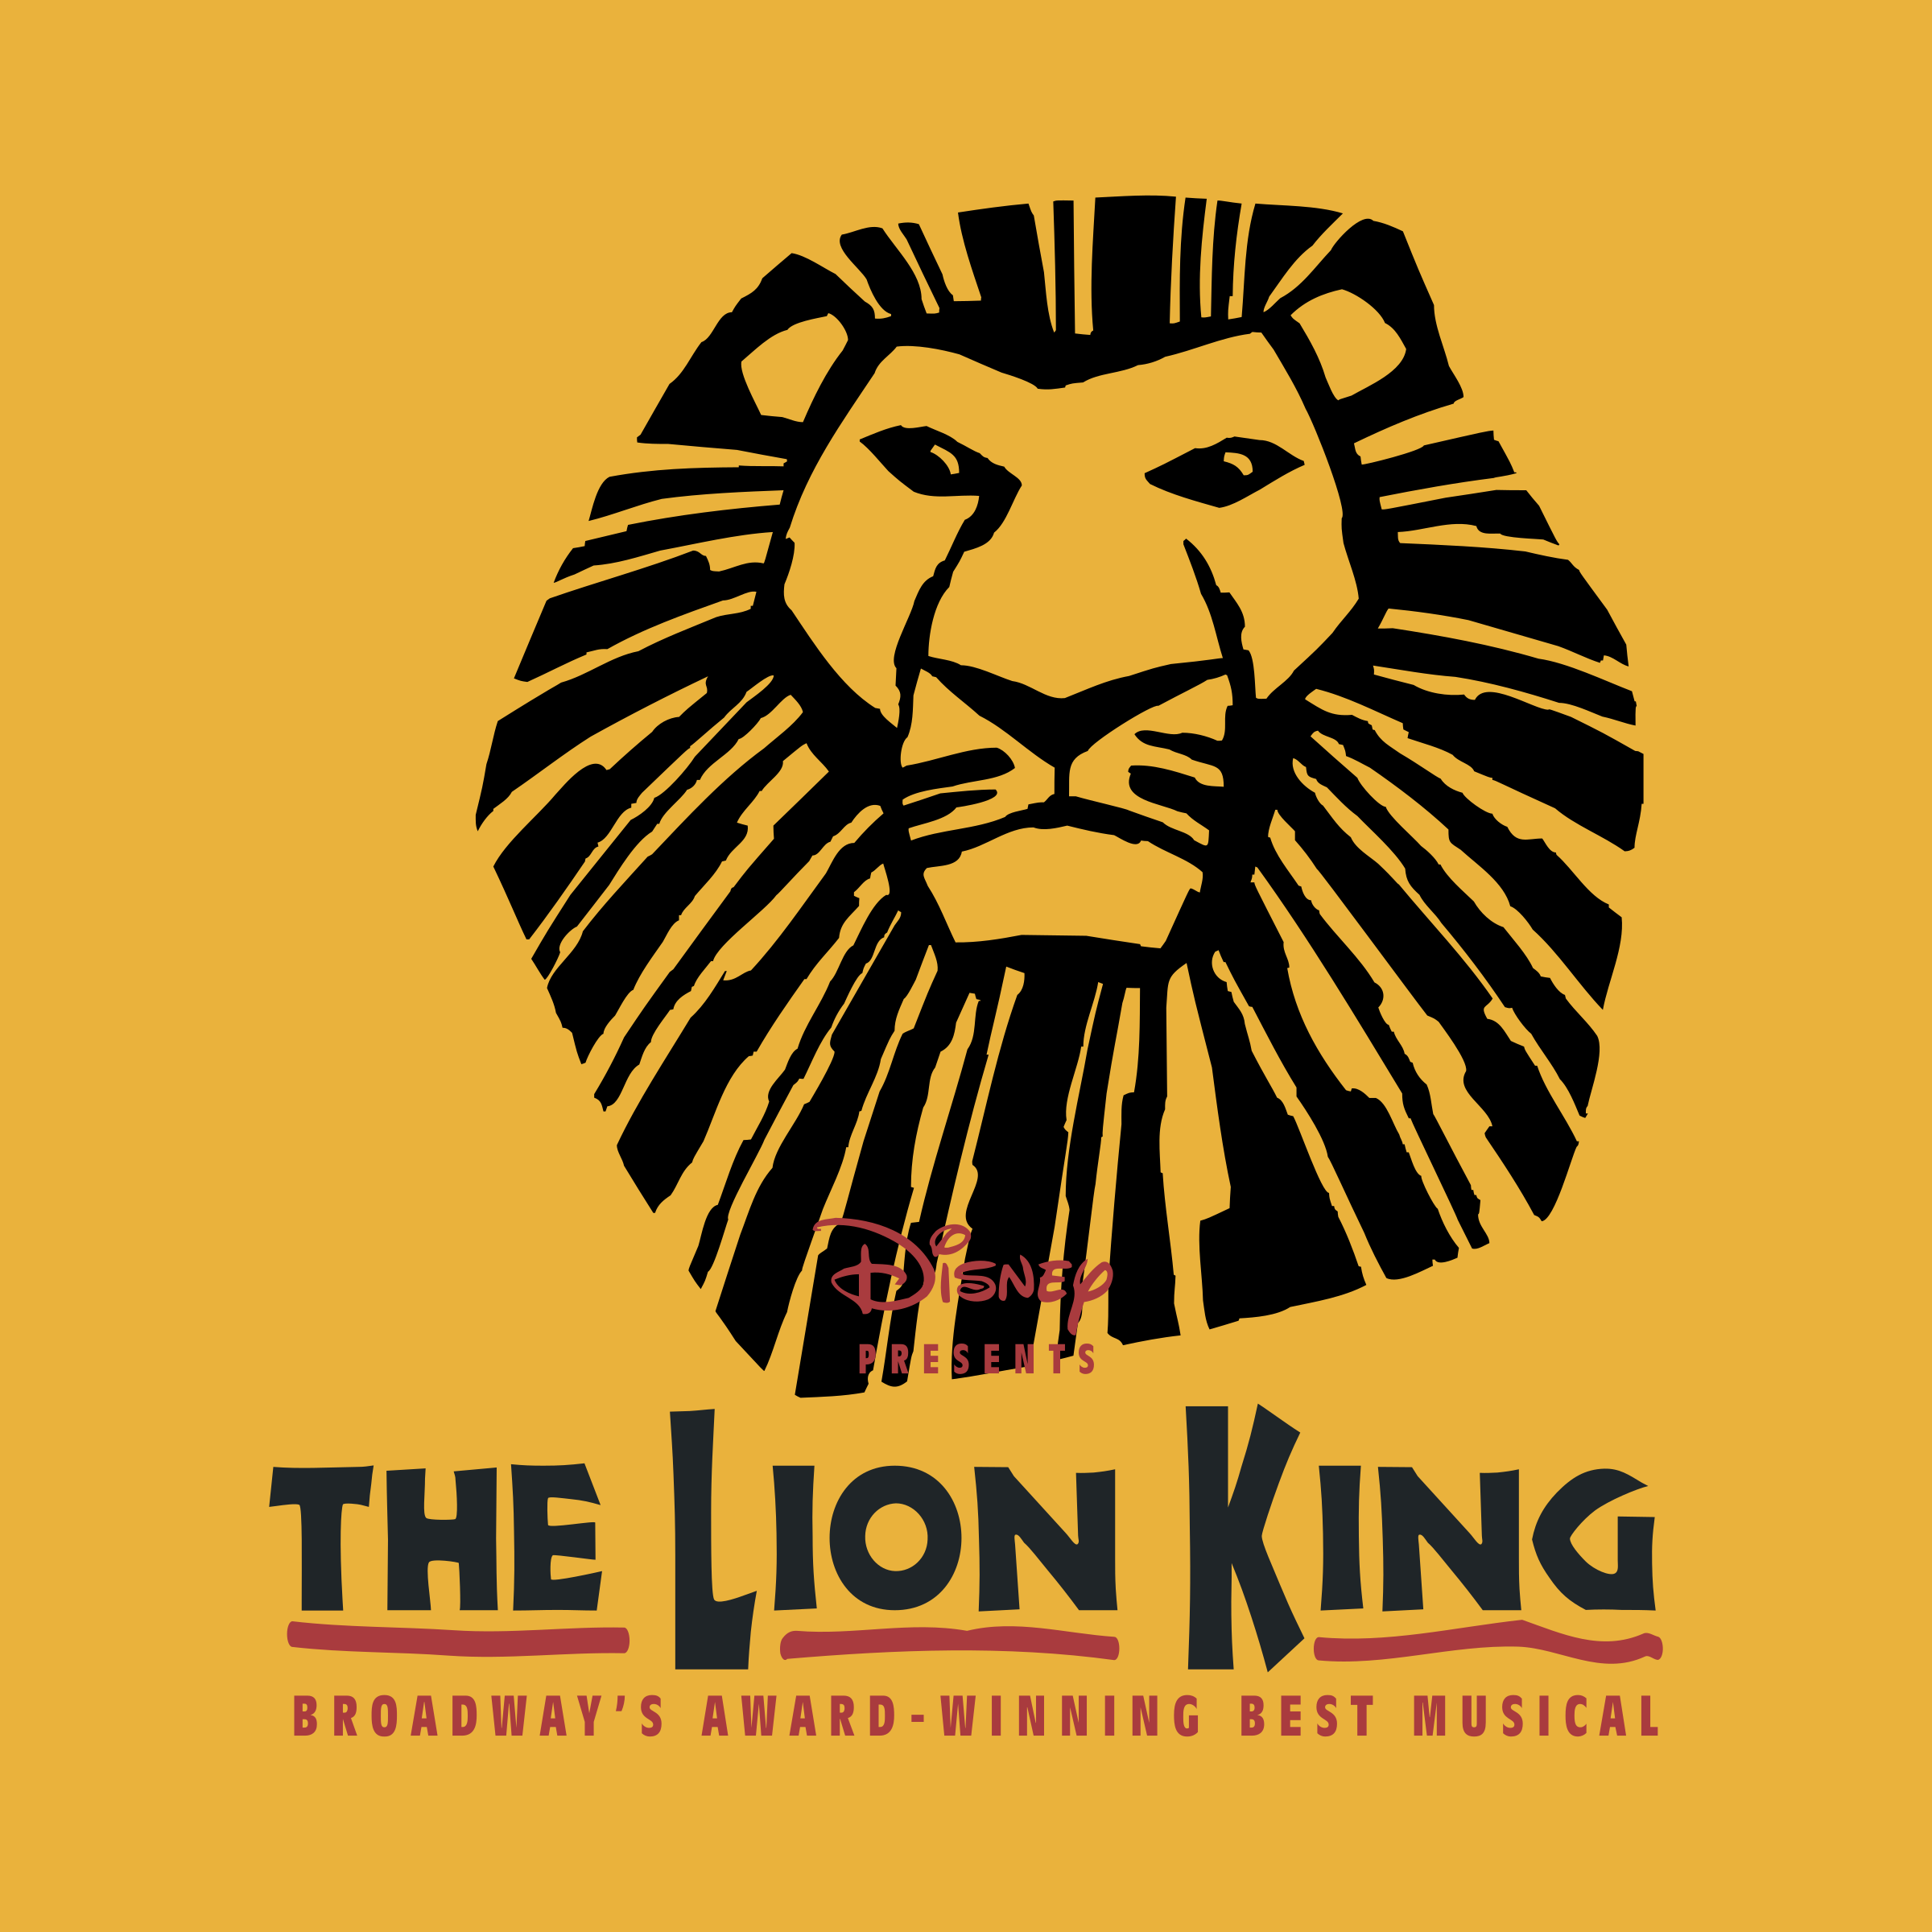 The Lion King Logo Png Transparent Svg Vector Freebie Supply